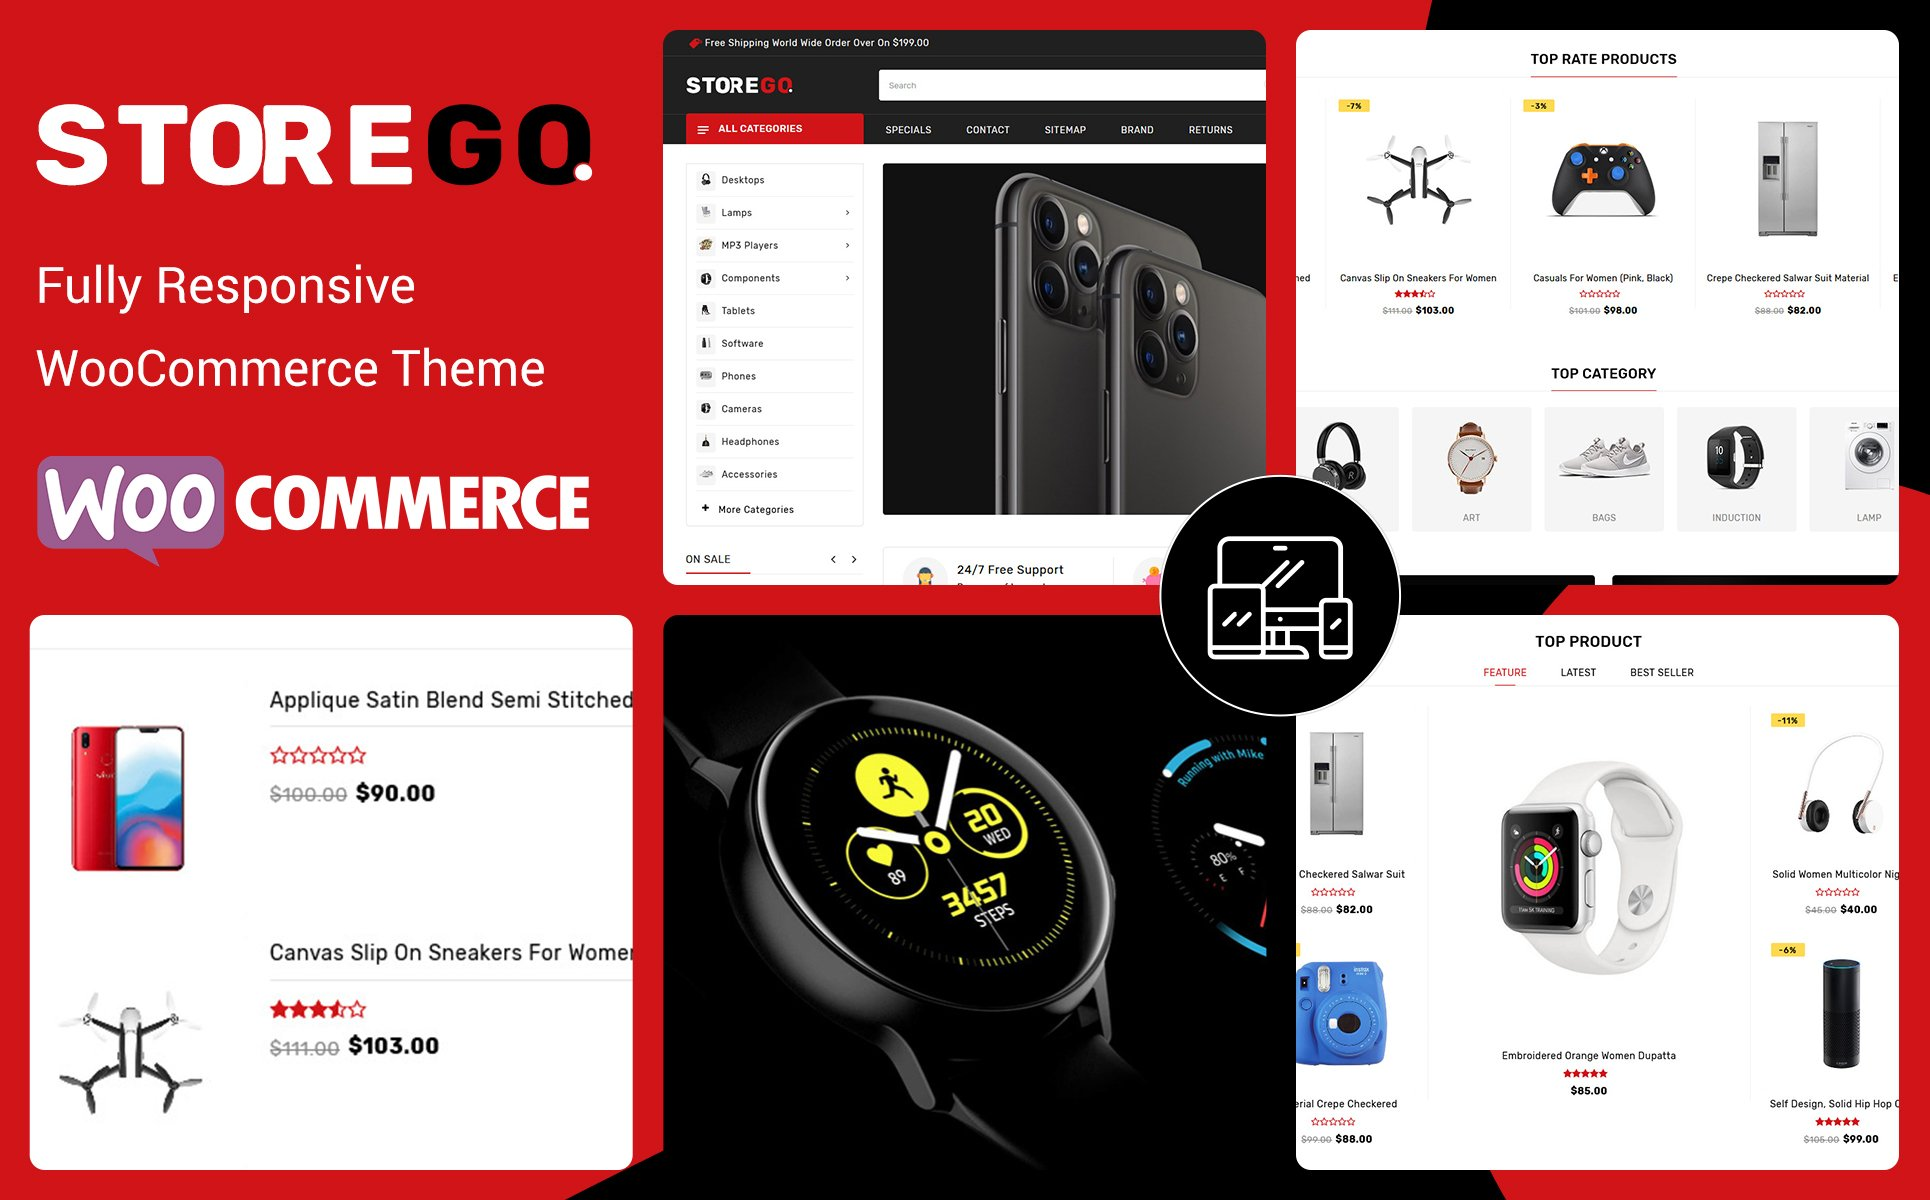 StoreGo - MultiPurpose Electronic Store WooCommerce Theme